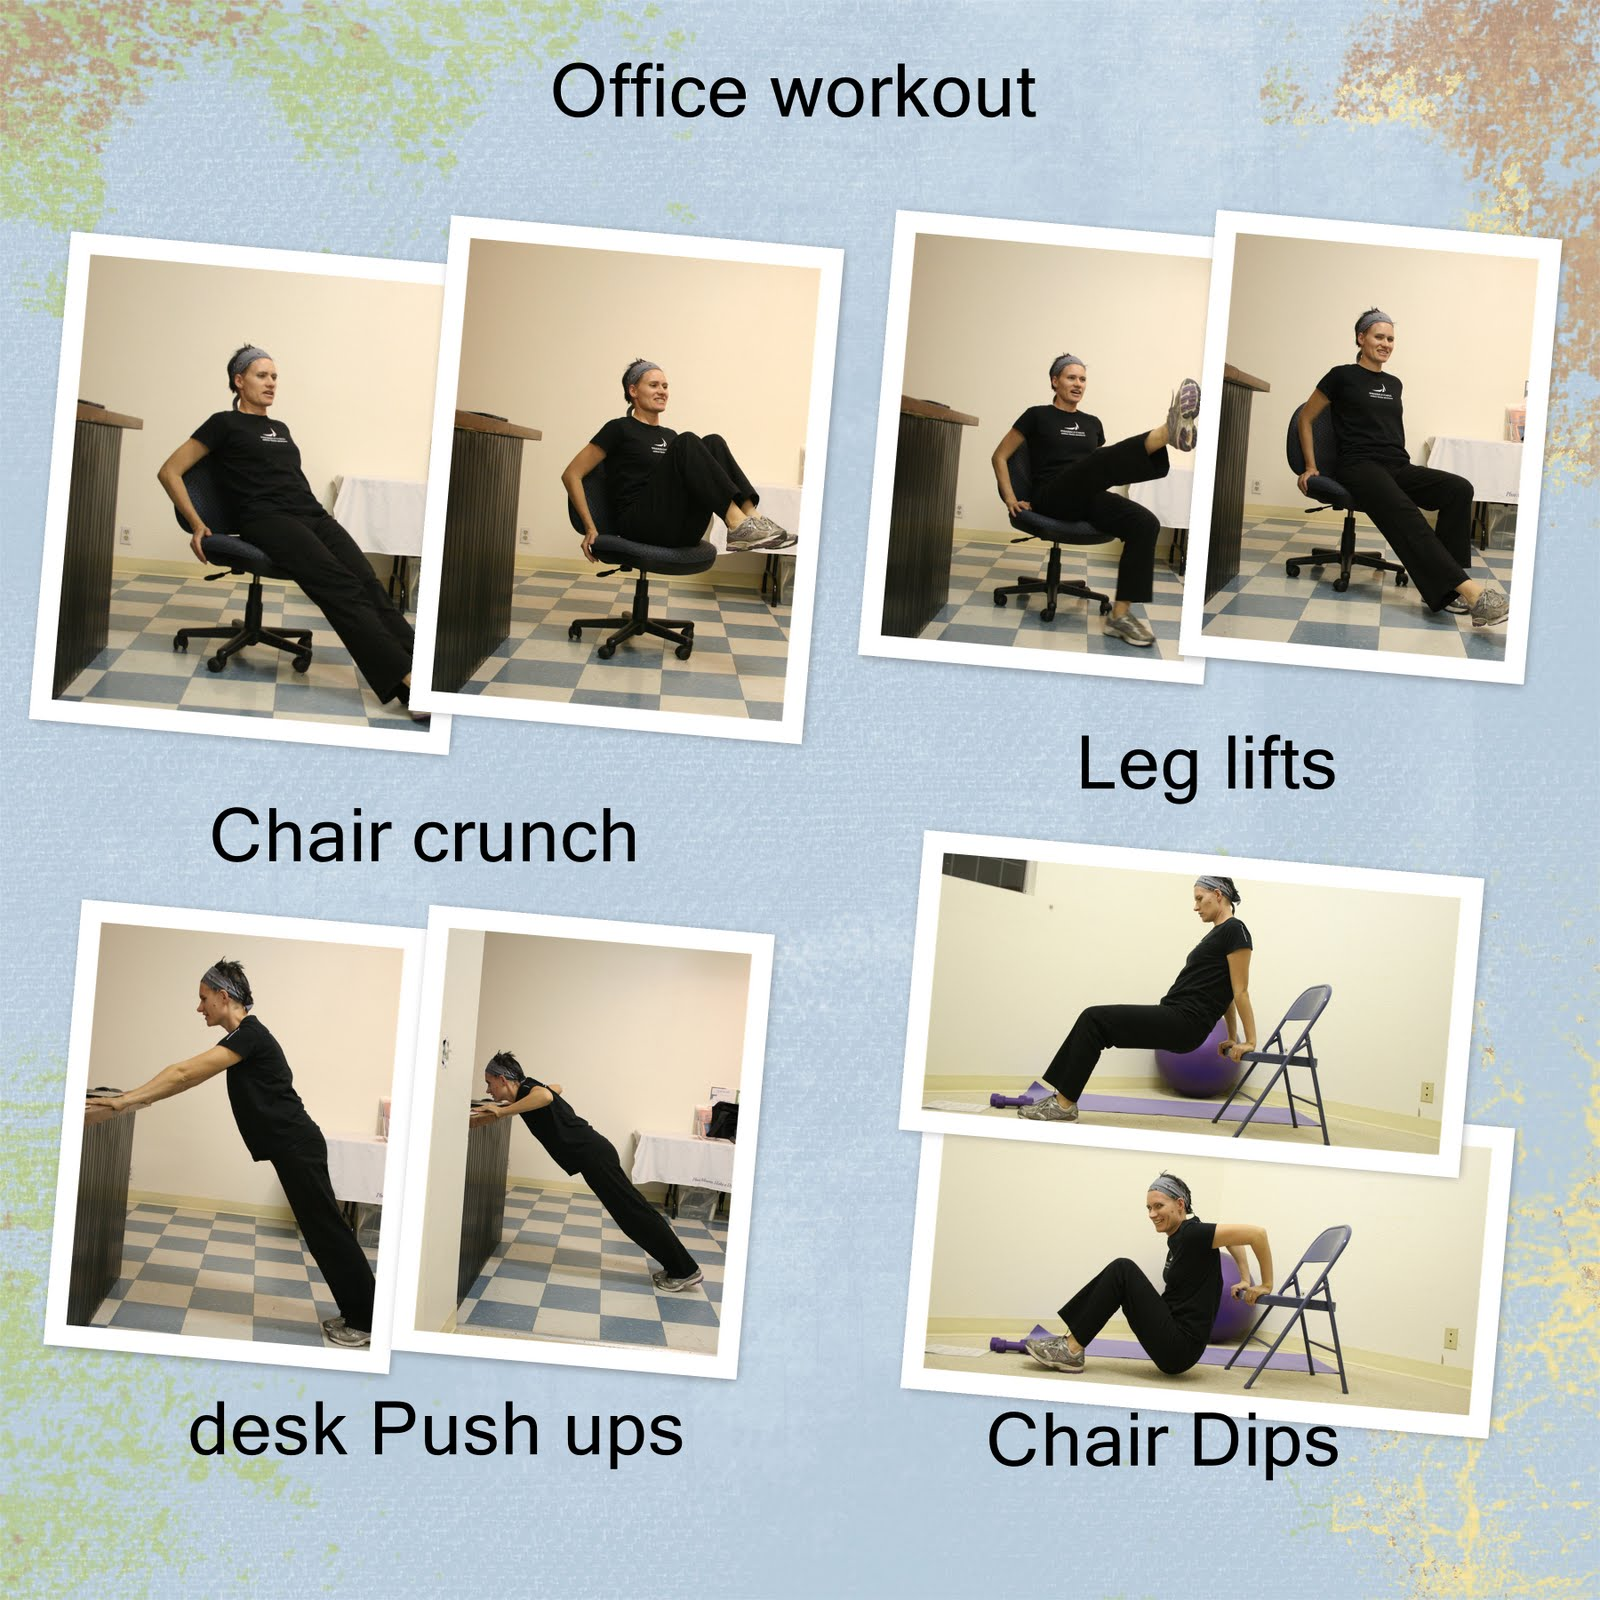 Chair Exercises At Work Make Your Own Office Michelle Pfeiffer Workout And Diet Nude Naked Pussy Slip